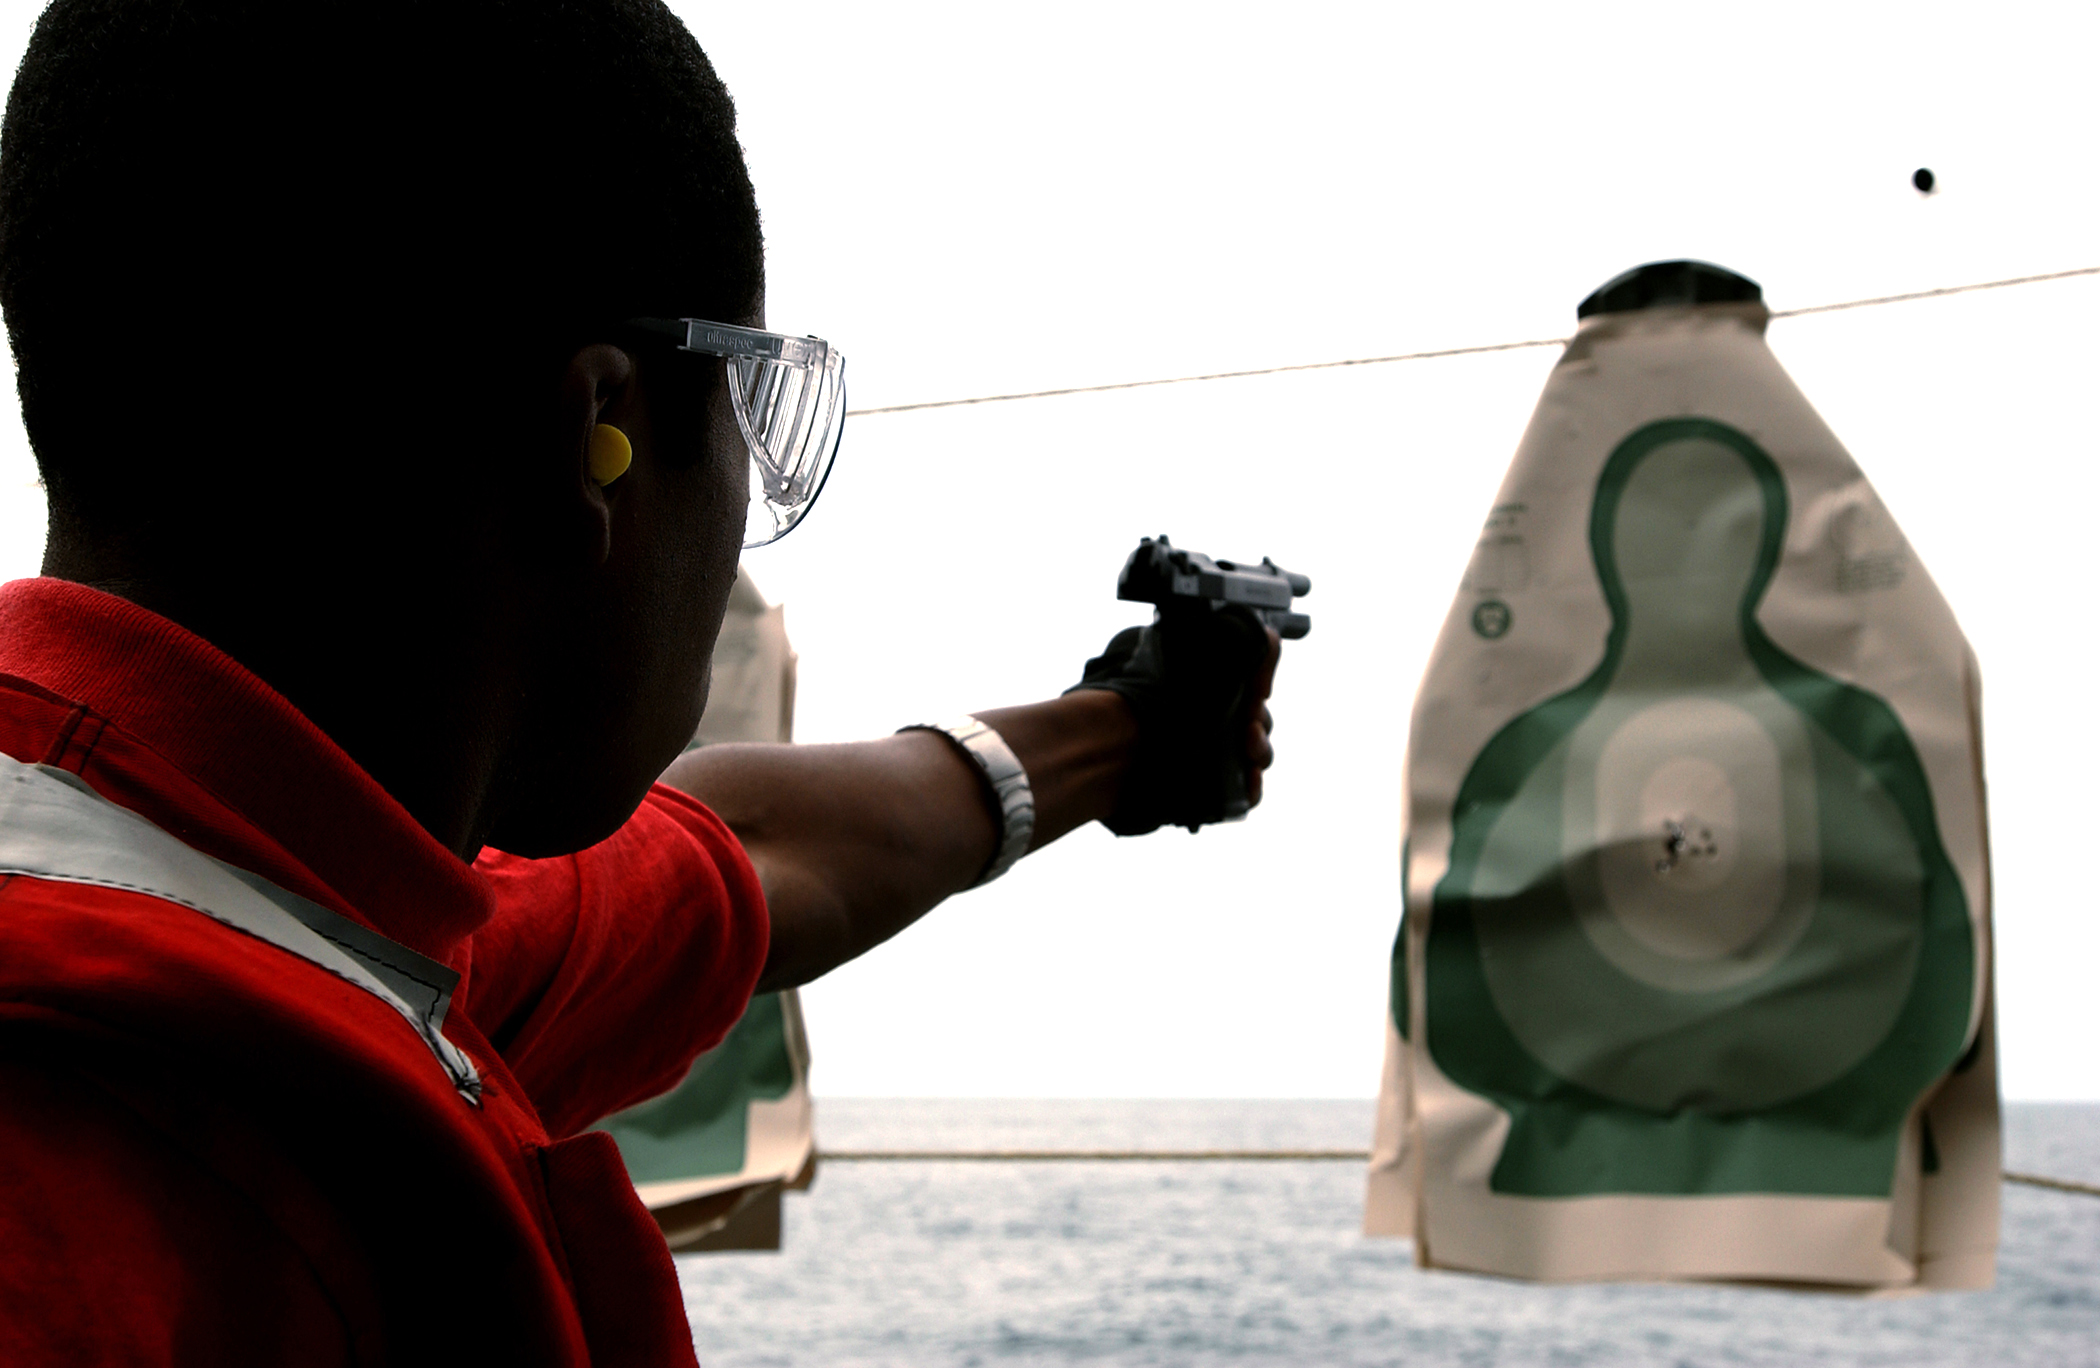 palm beach fla shoots the target with a 9mm pistol chicago palm pistol ...